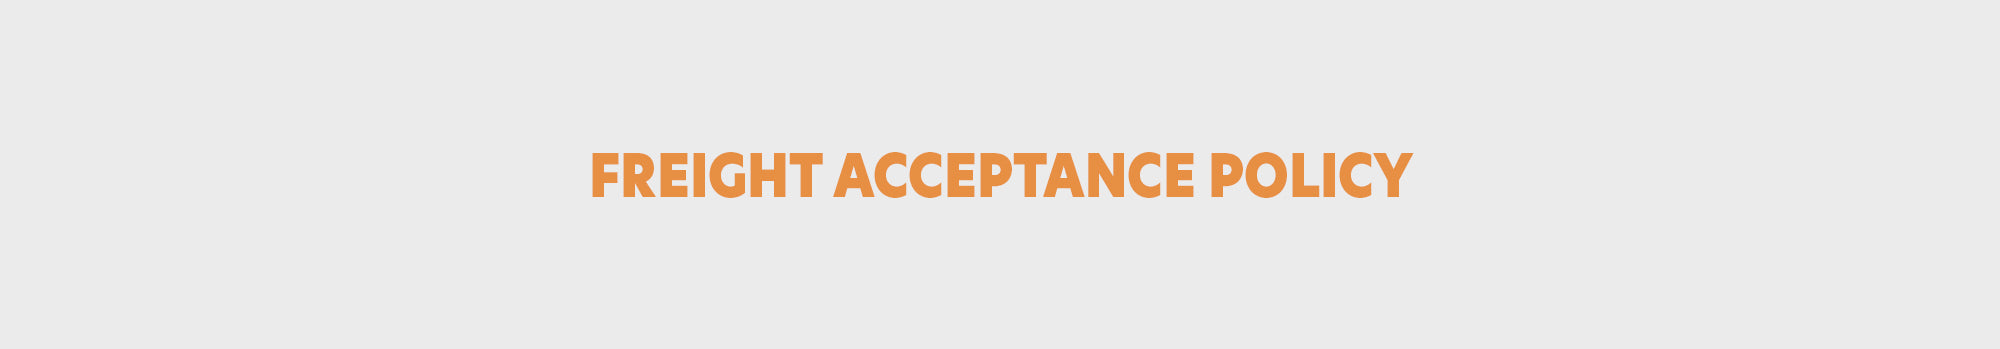 freight acceptance